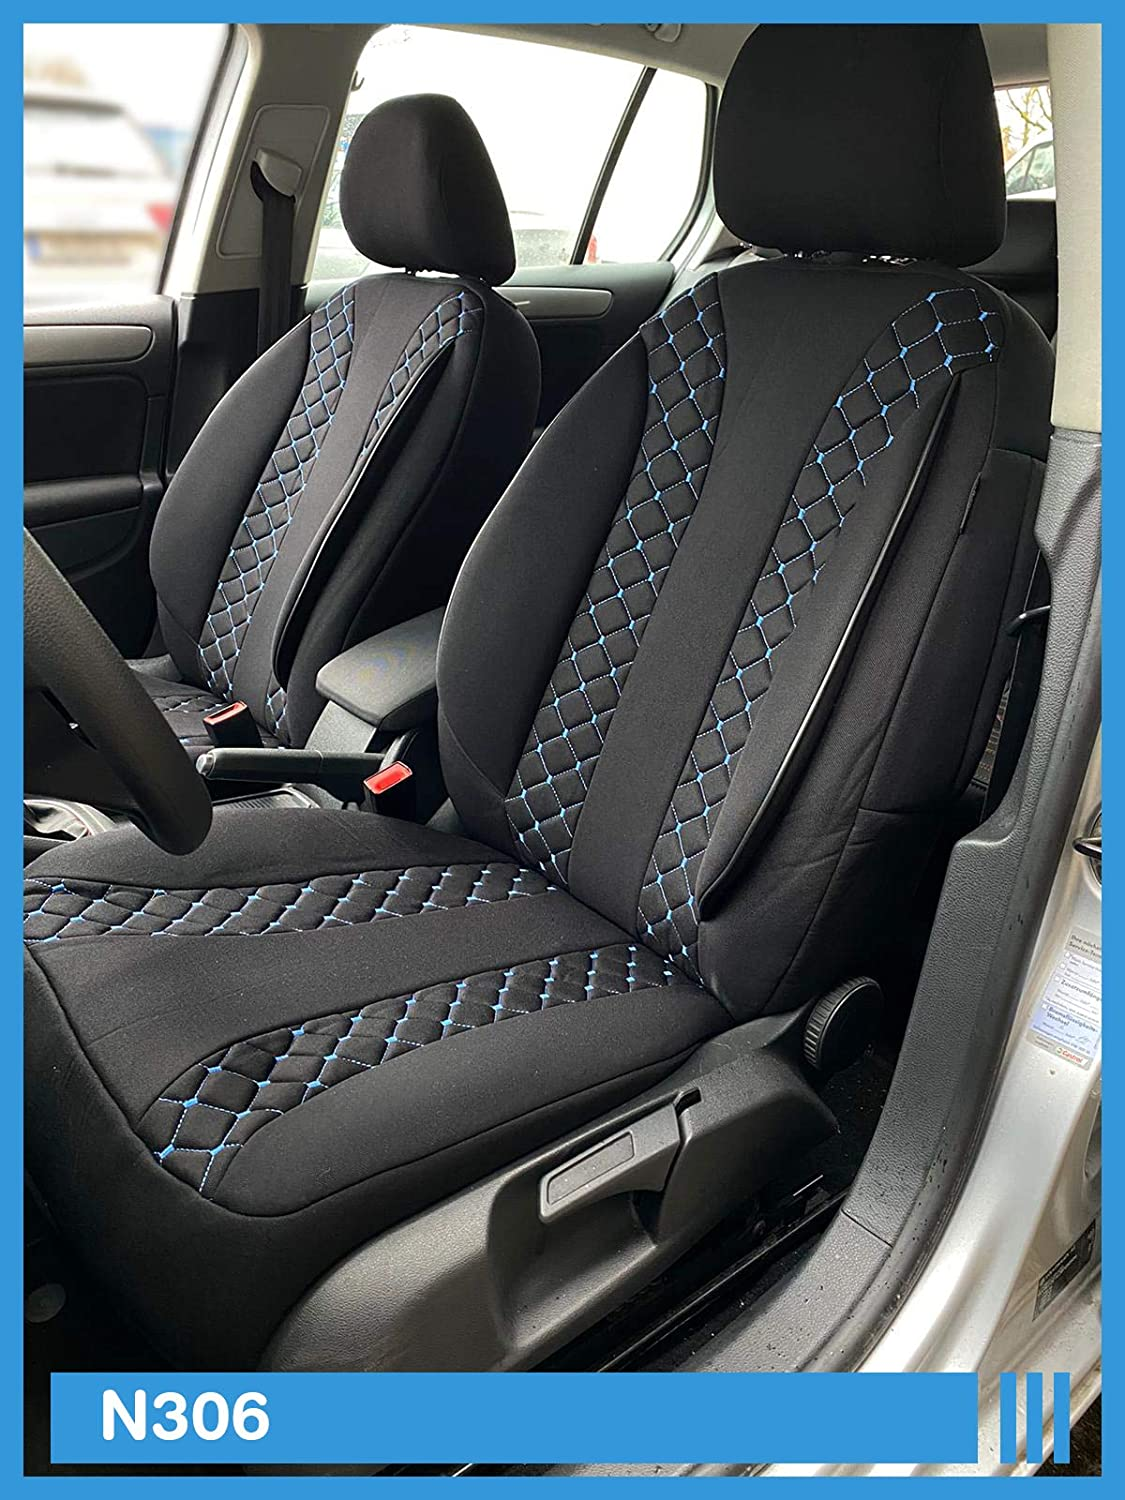 Dimensions seat Covers Compatible with Nissan X-Trail T32 Driver and Passenger from 2014 FB:N306